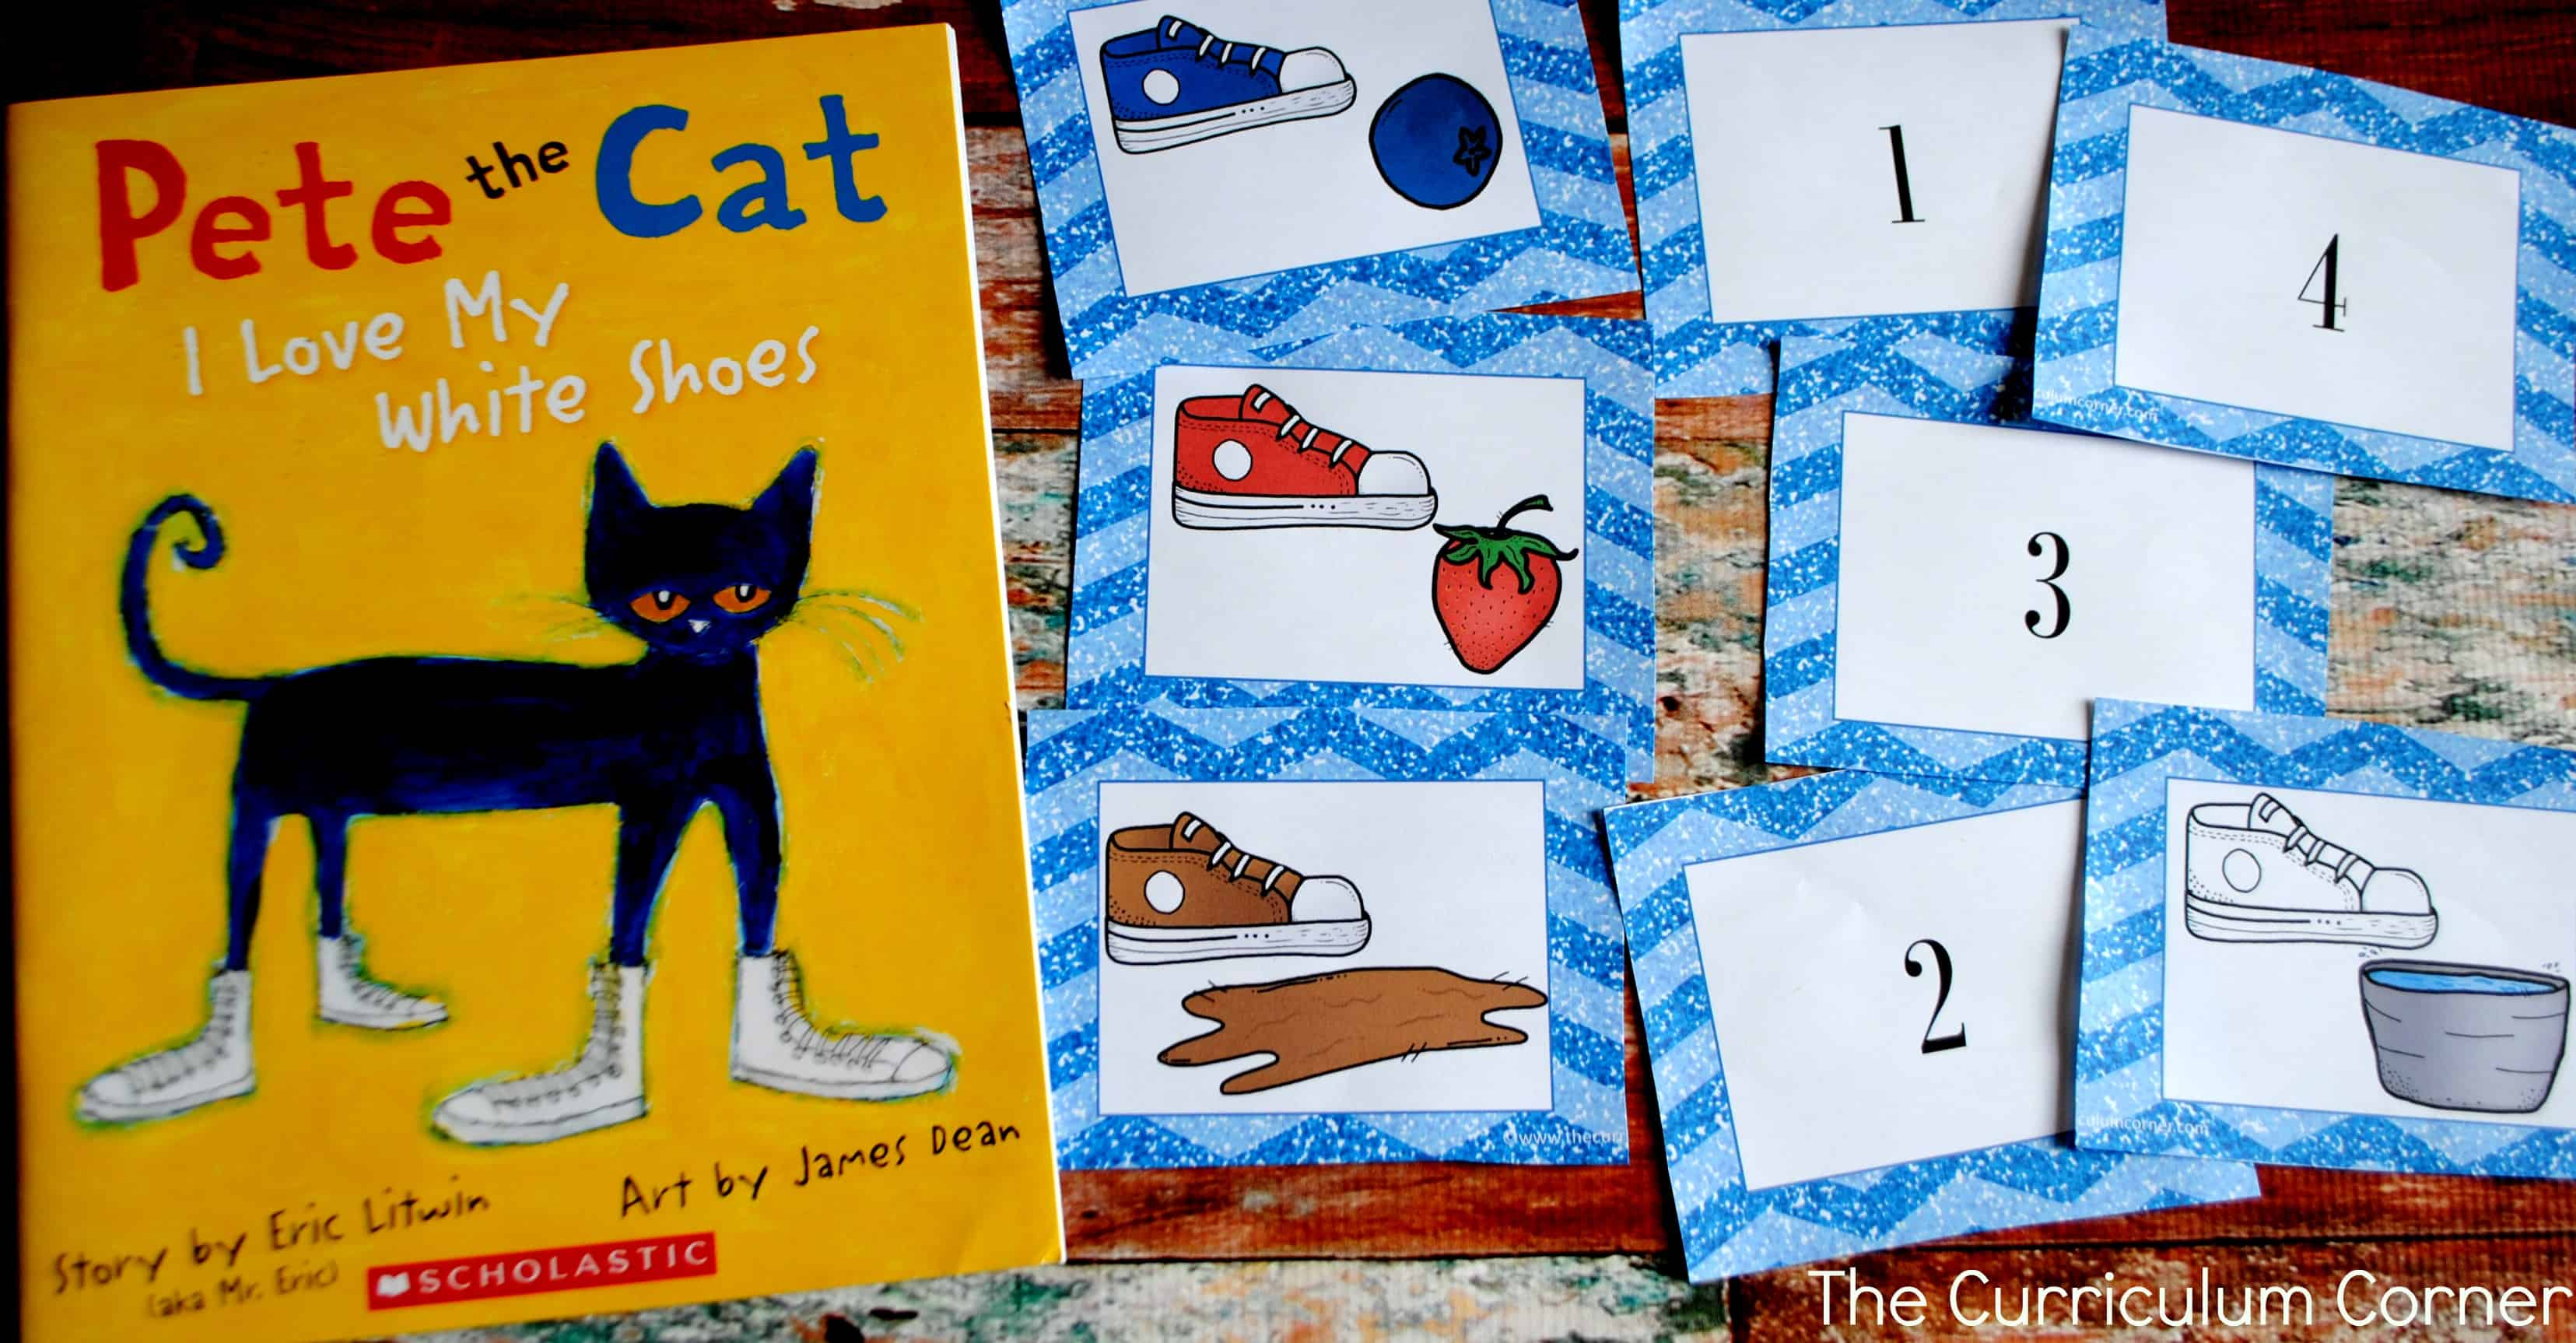 photo about Pete the Cat Shoes Printable titled Pete the Cat Supplies - The Kinder Corner